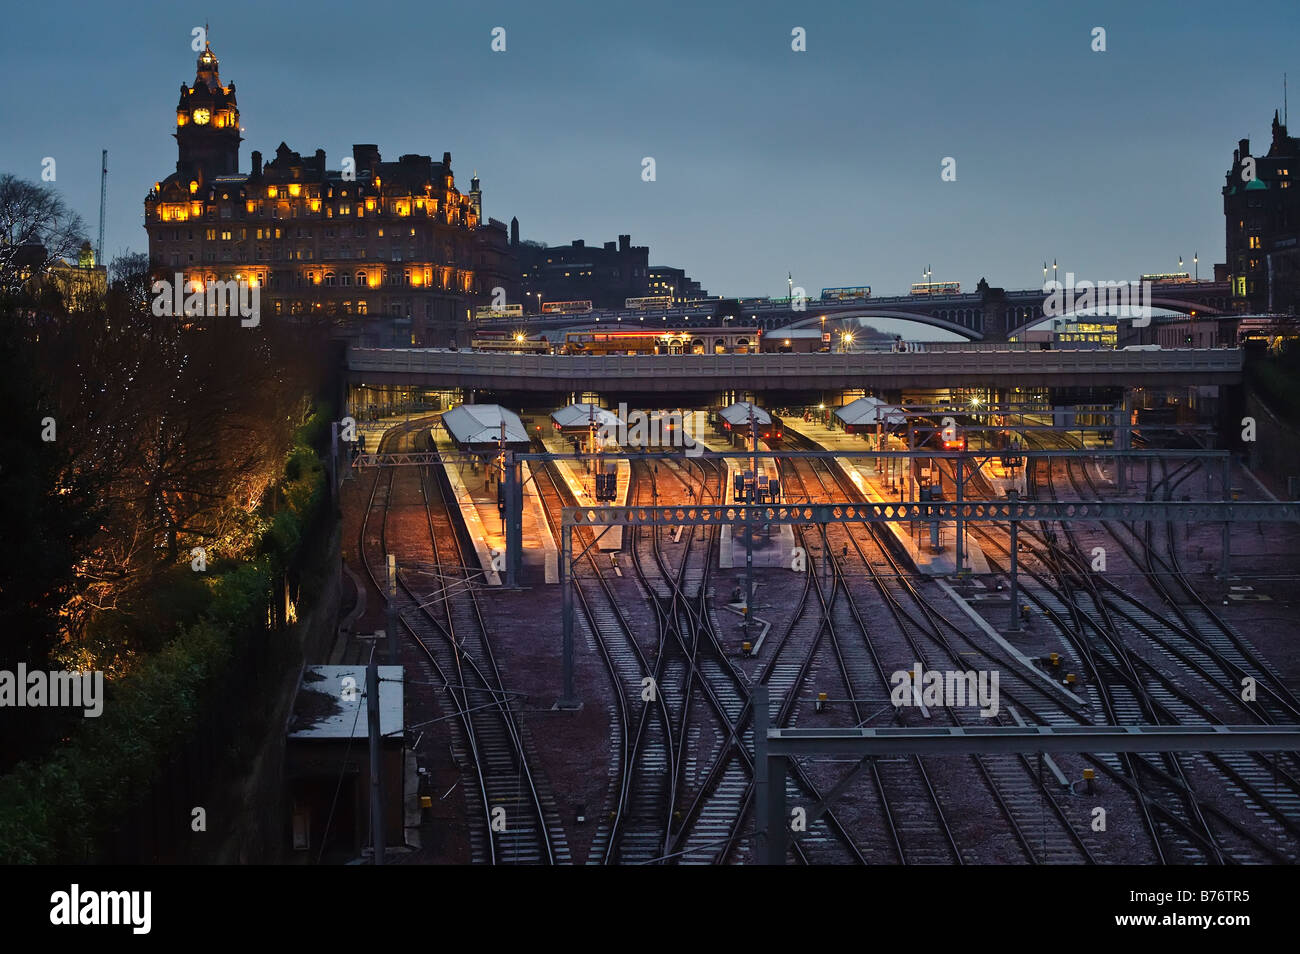 Edinburgh's Waverley Station and Balmoral Hotel in Winter - Stock Image